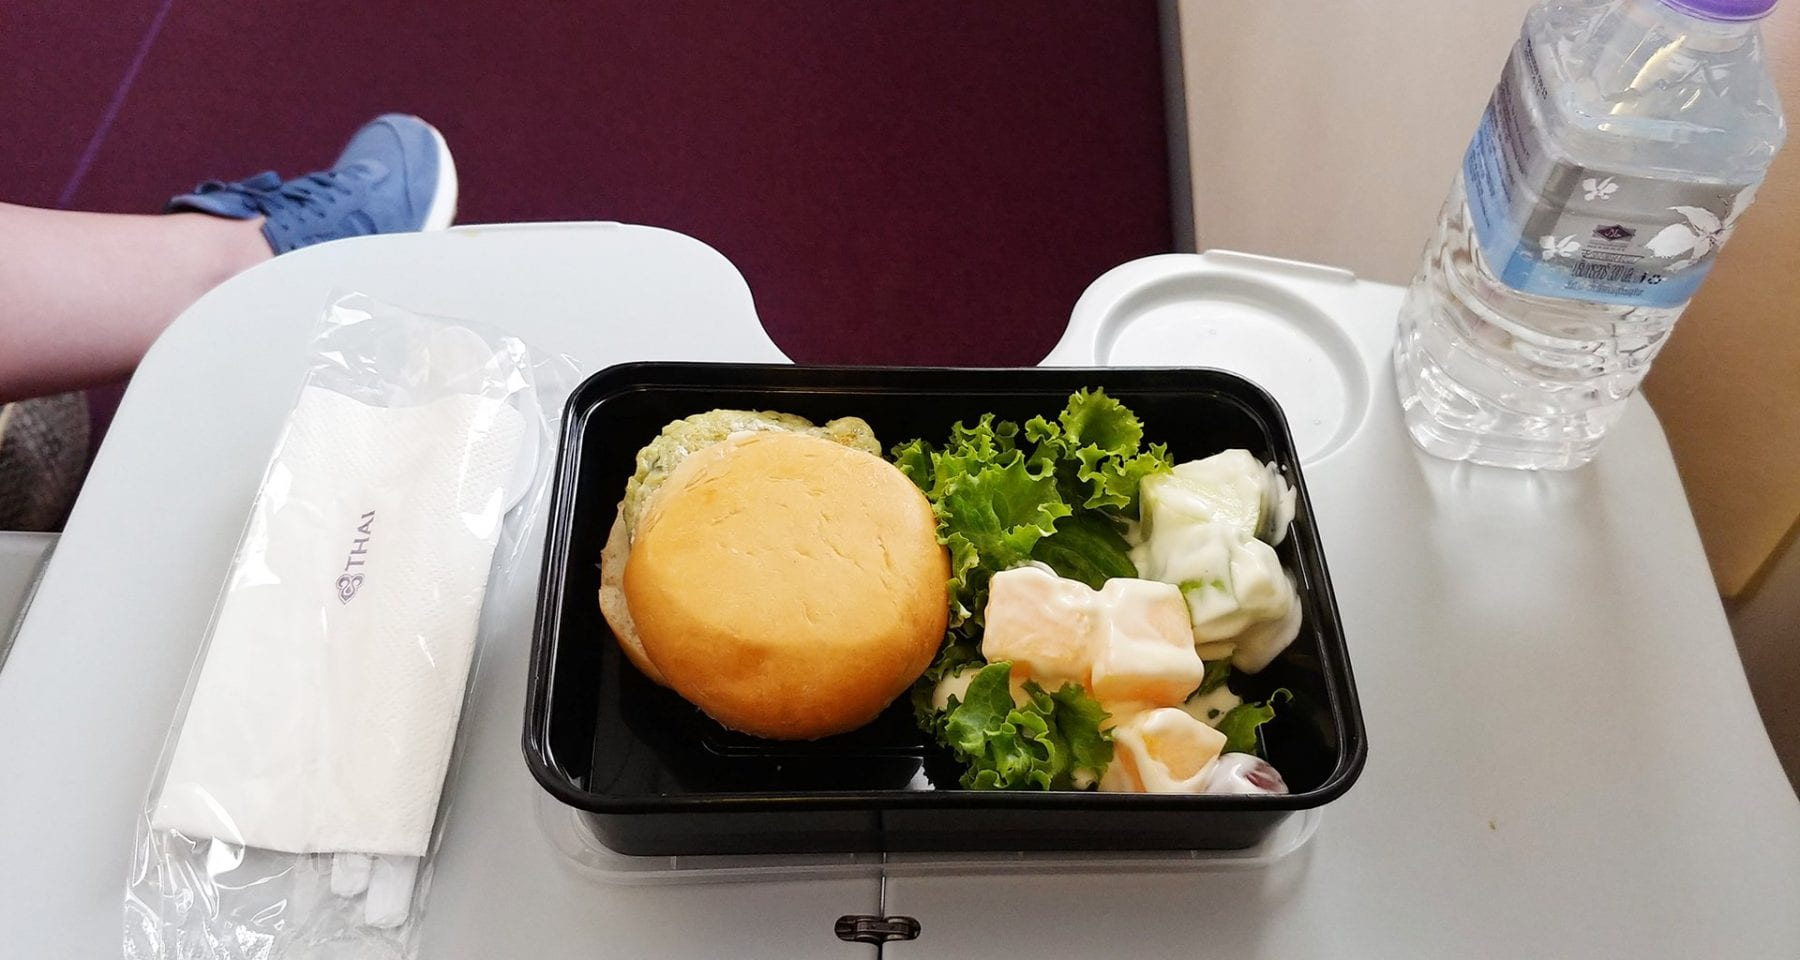 Thai Airways economy class meal domestic flight